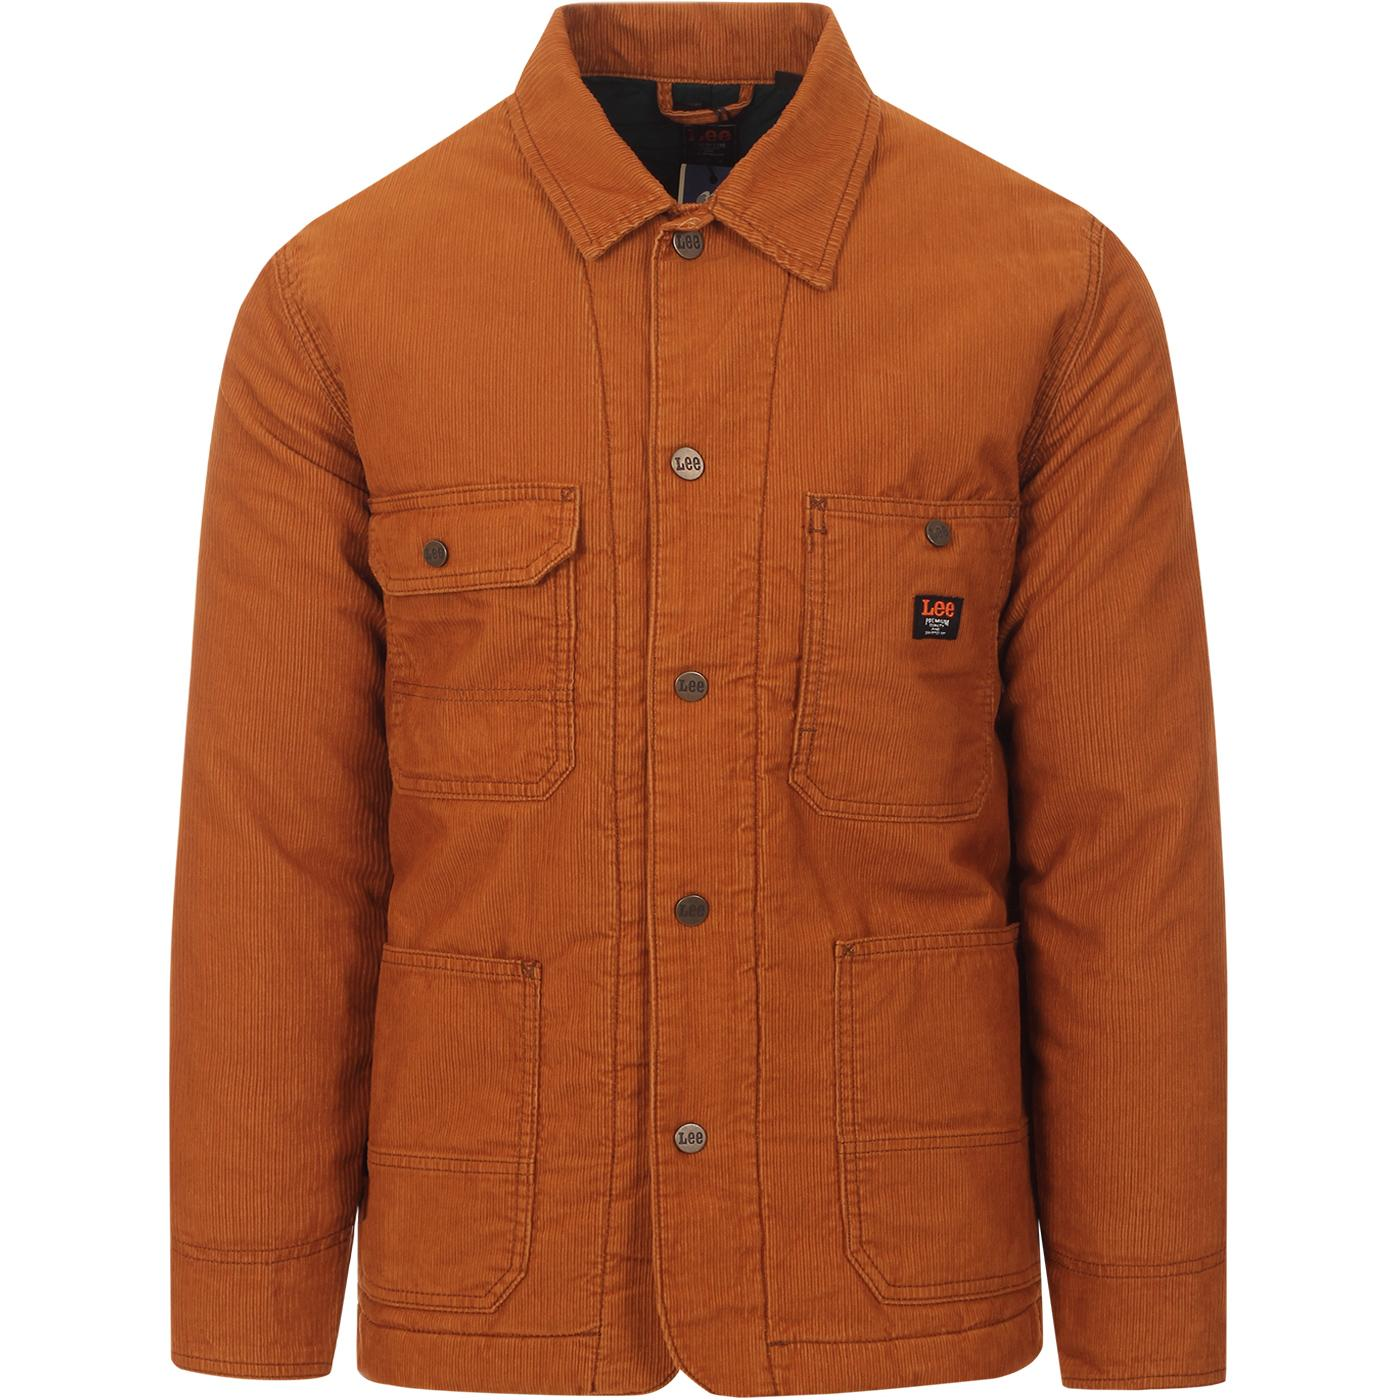 LEE Retro 70s Winter Cord Quilted Loco Jacket TAN